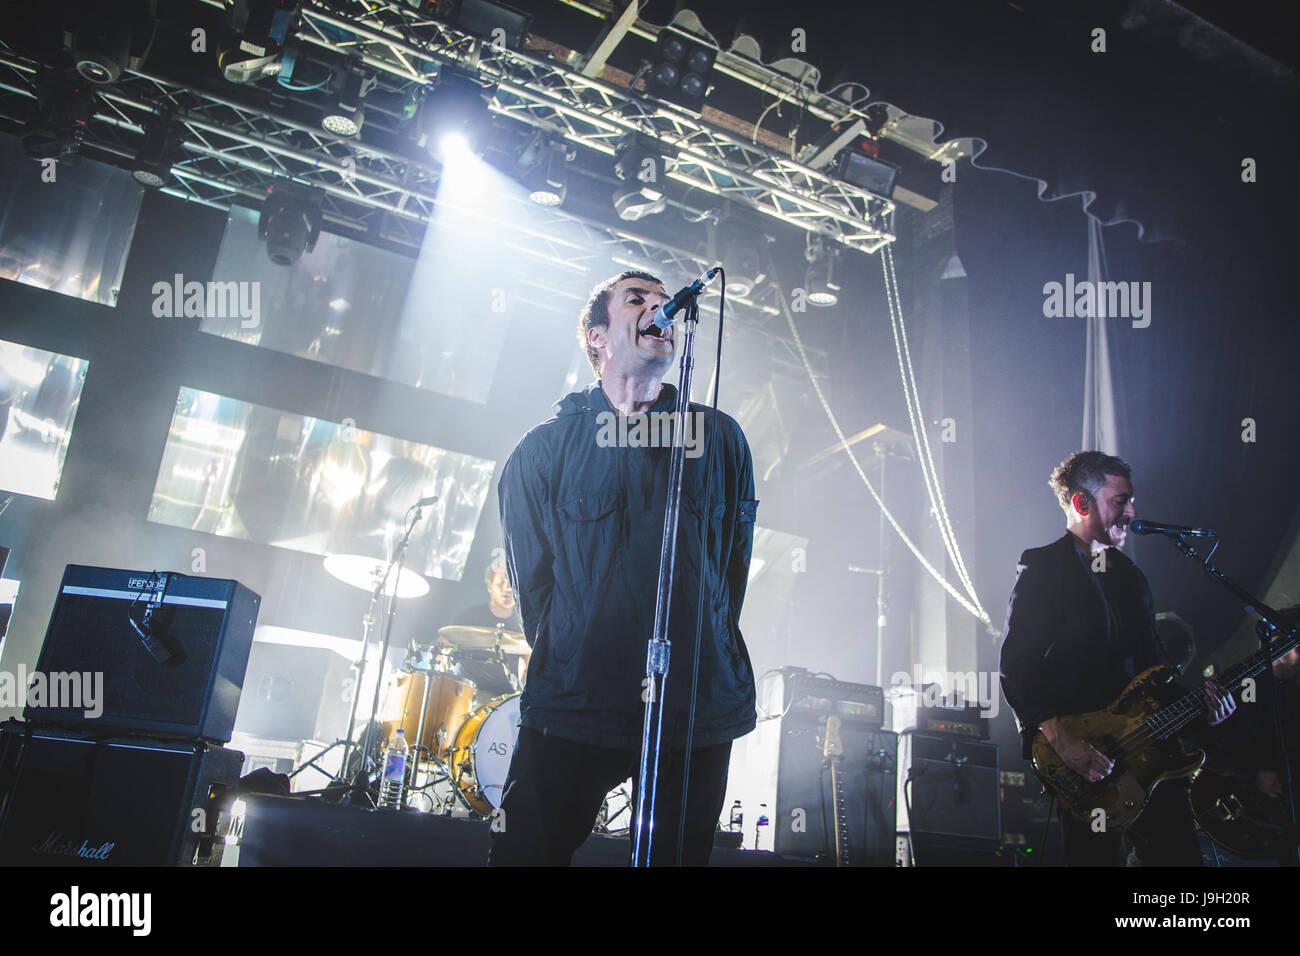 London, UK. 1st June, 2017. Former Oasis singer and frontman, Liam Gallagher, performs a sold out show at the Electric - Stock Image